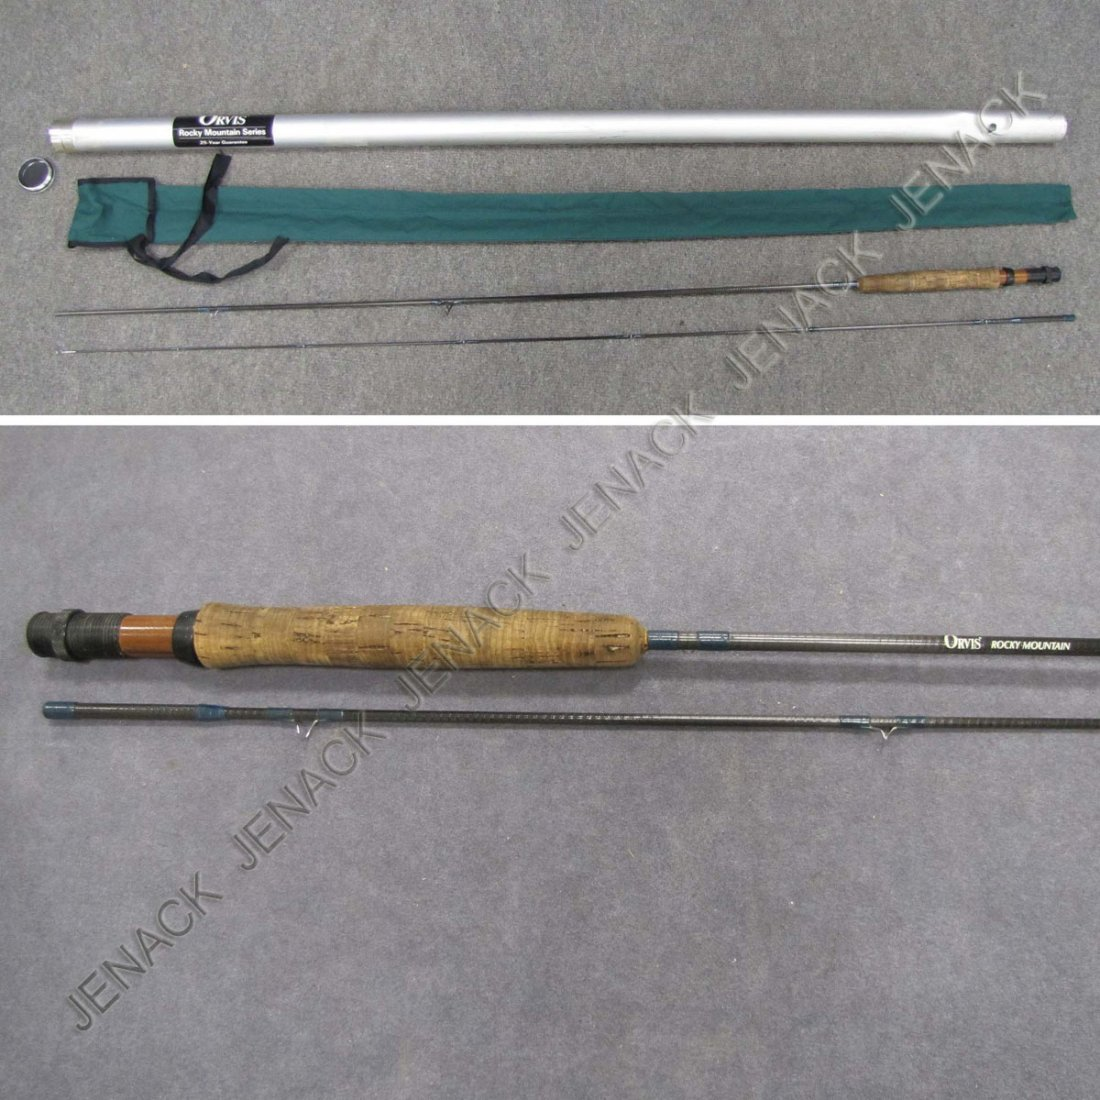 232: ORVIS ROCKY MOUNTAIN 8' GRAPHITE FLY ROD